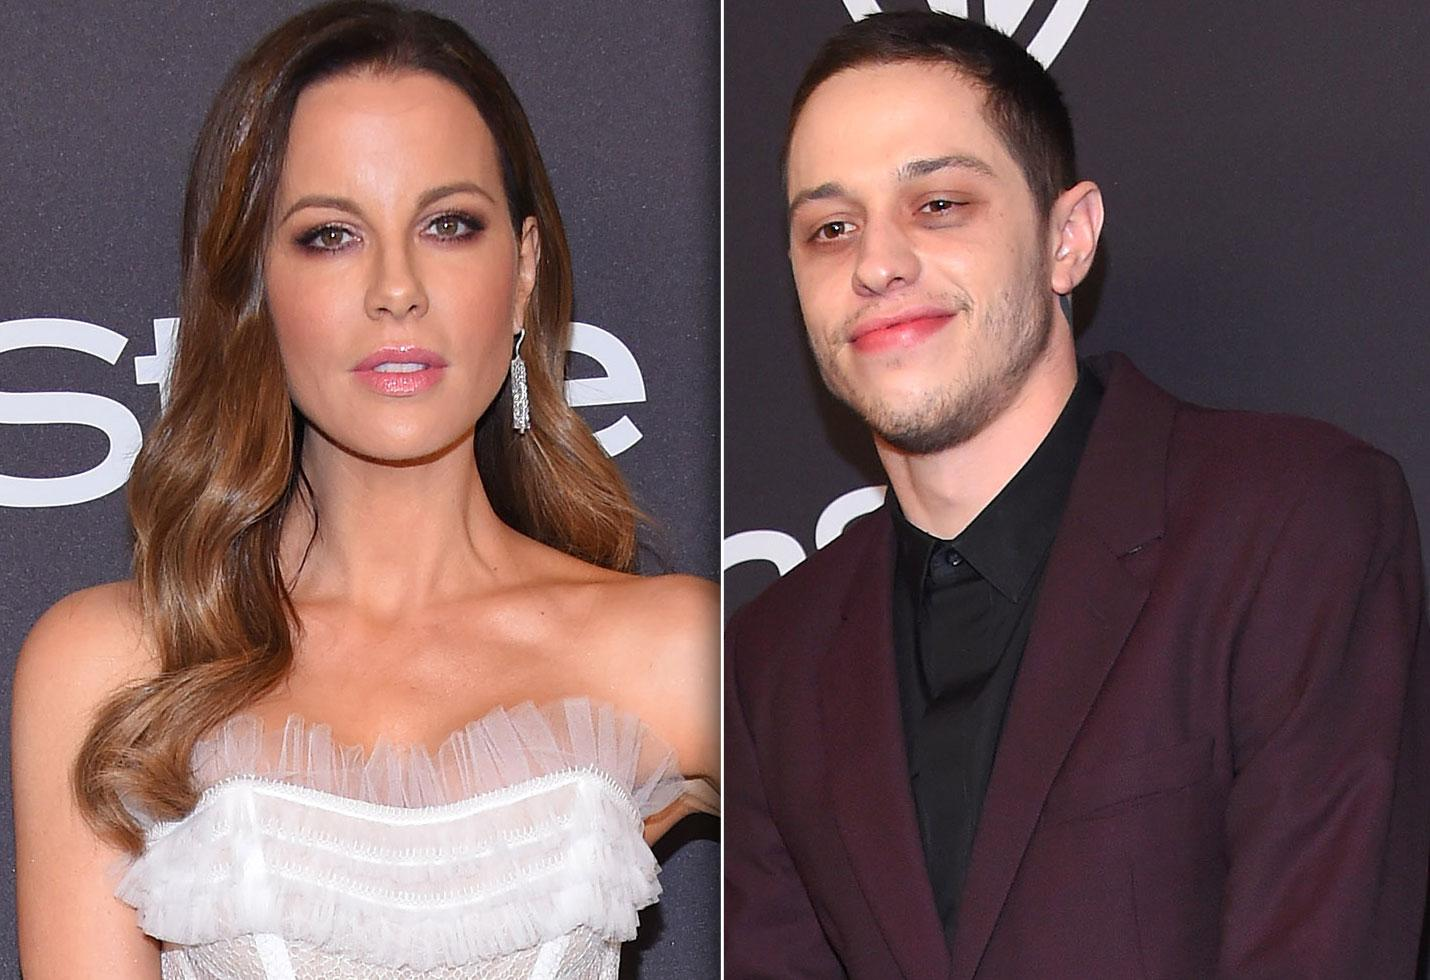 Kate Beckinsale Reacts To Meme Dragging Her Romance With Pete Davidson - Check Out Her Epic Response!